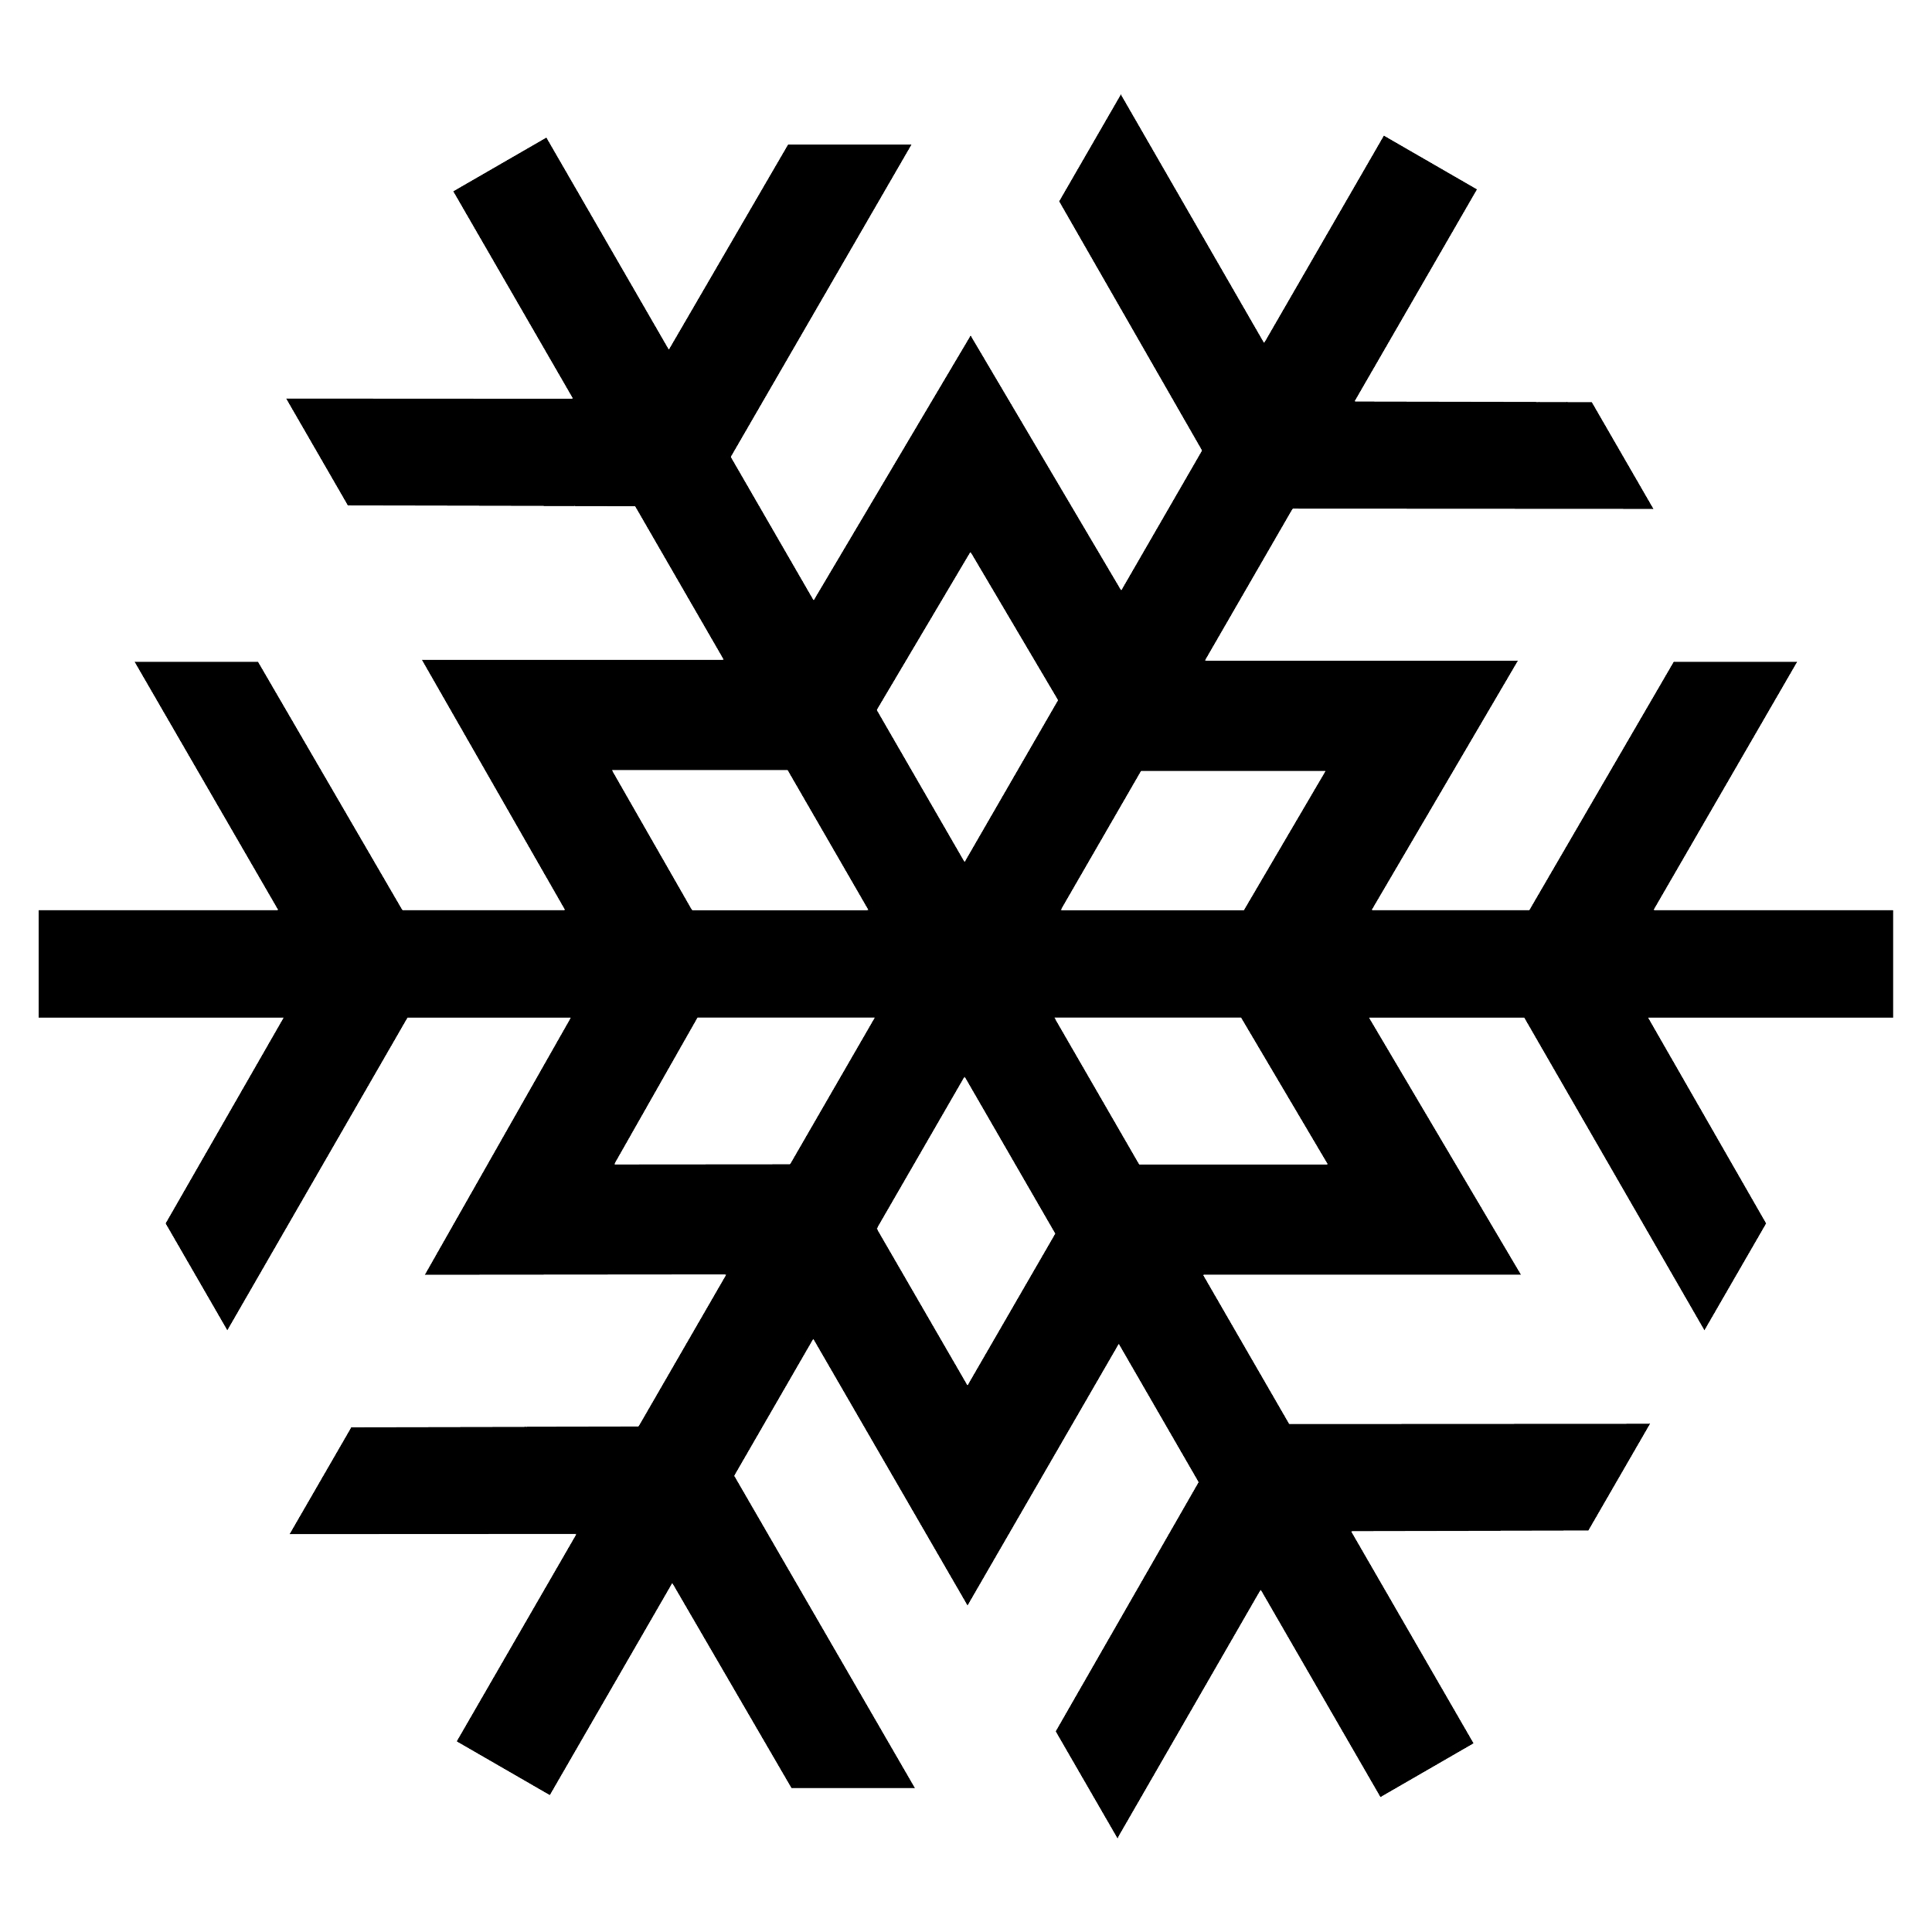 Snowflake silhouette png. Image